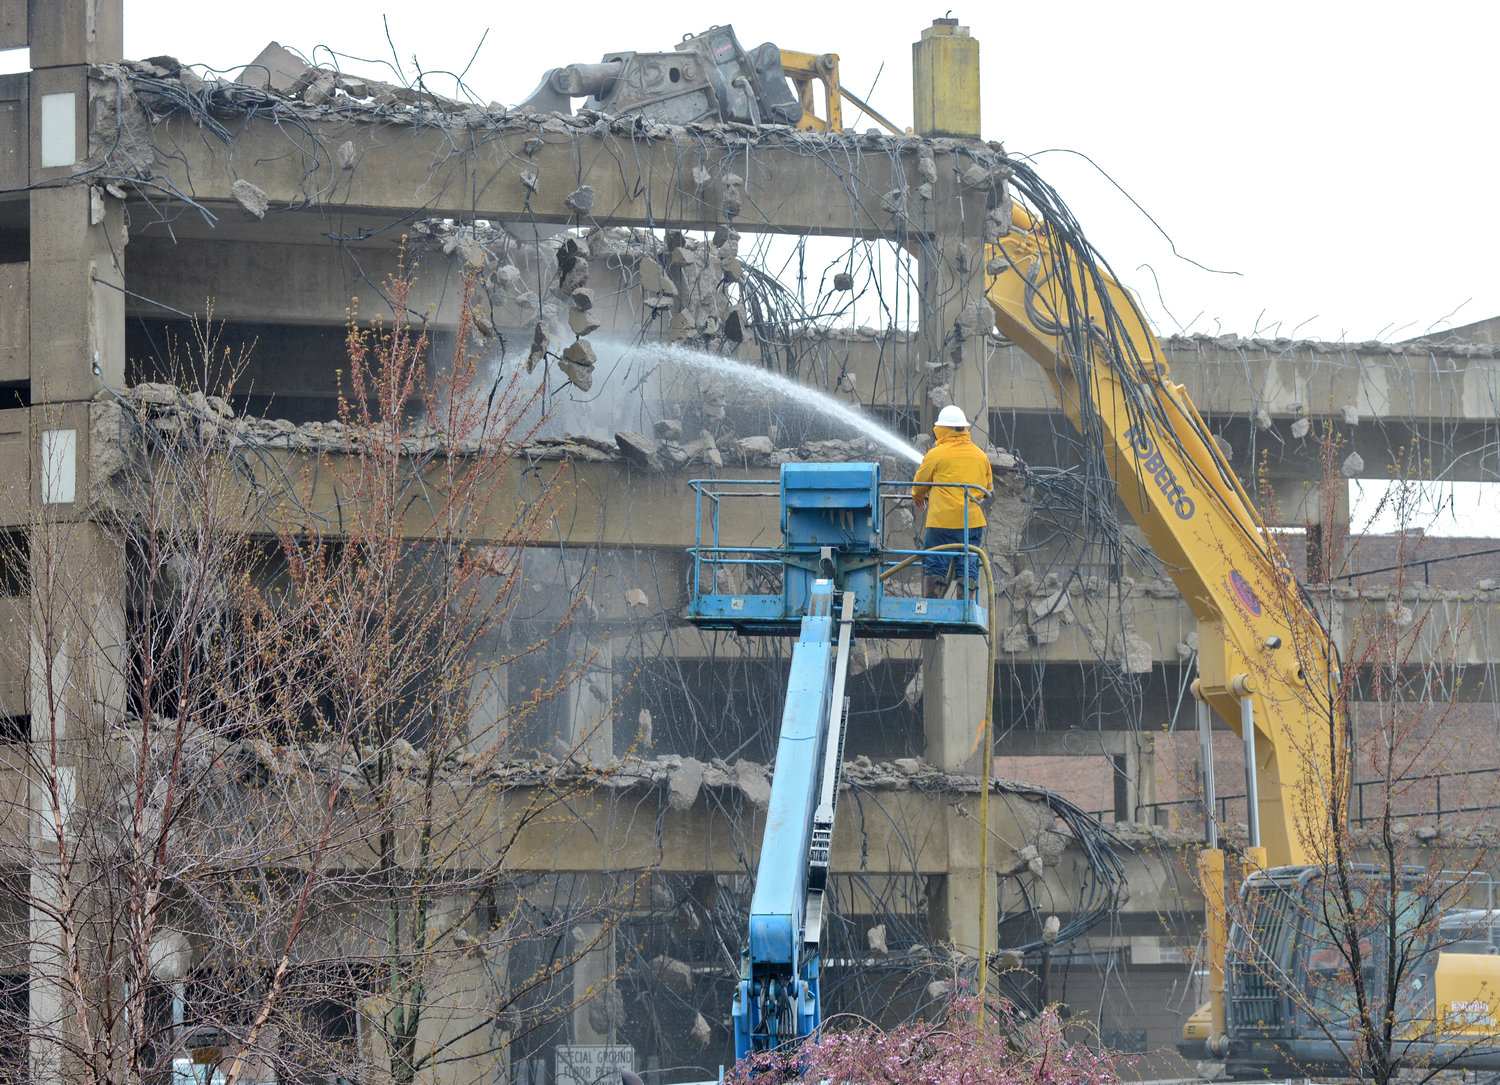 KEEPING THE DUST DOWN — A worker sprays water as a massive crane works to demolish the upper deck of the Liberty-North George Street parking garage on Friday morning. In her 2018 State of the City speech, Mayor Jacqueline M. Izzo pointed to the demolition project as a key element of the city's Downtown Revitalization  Initiative.